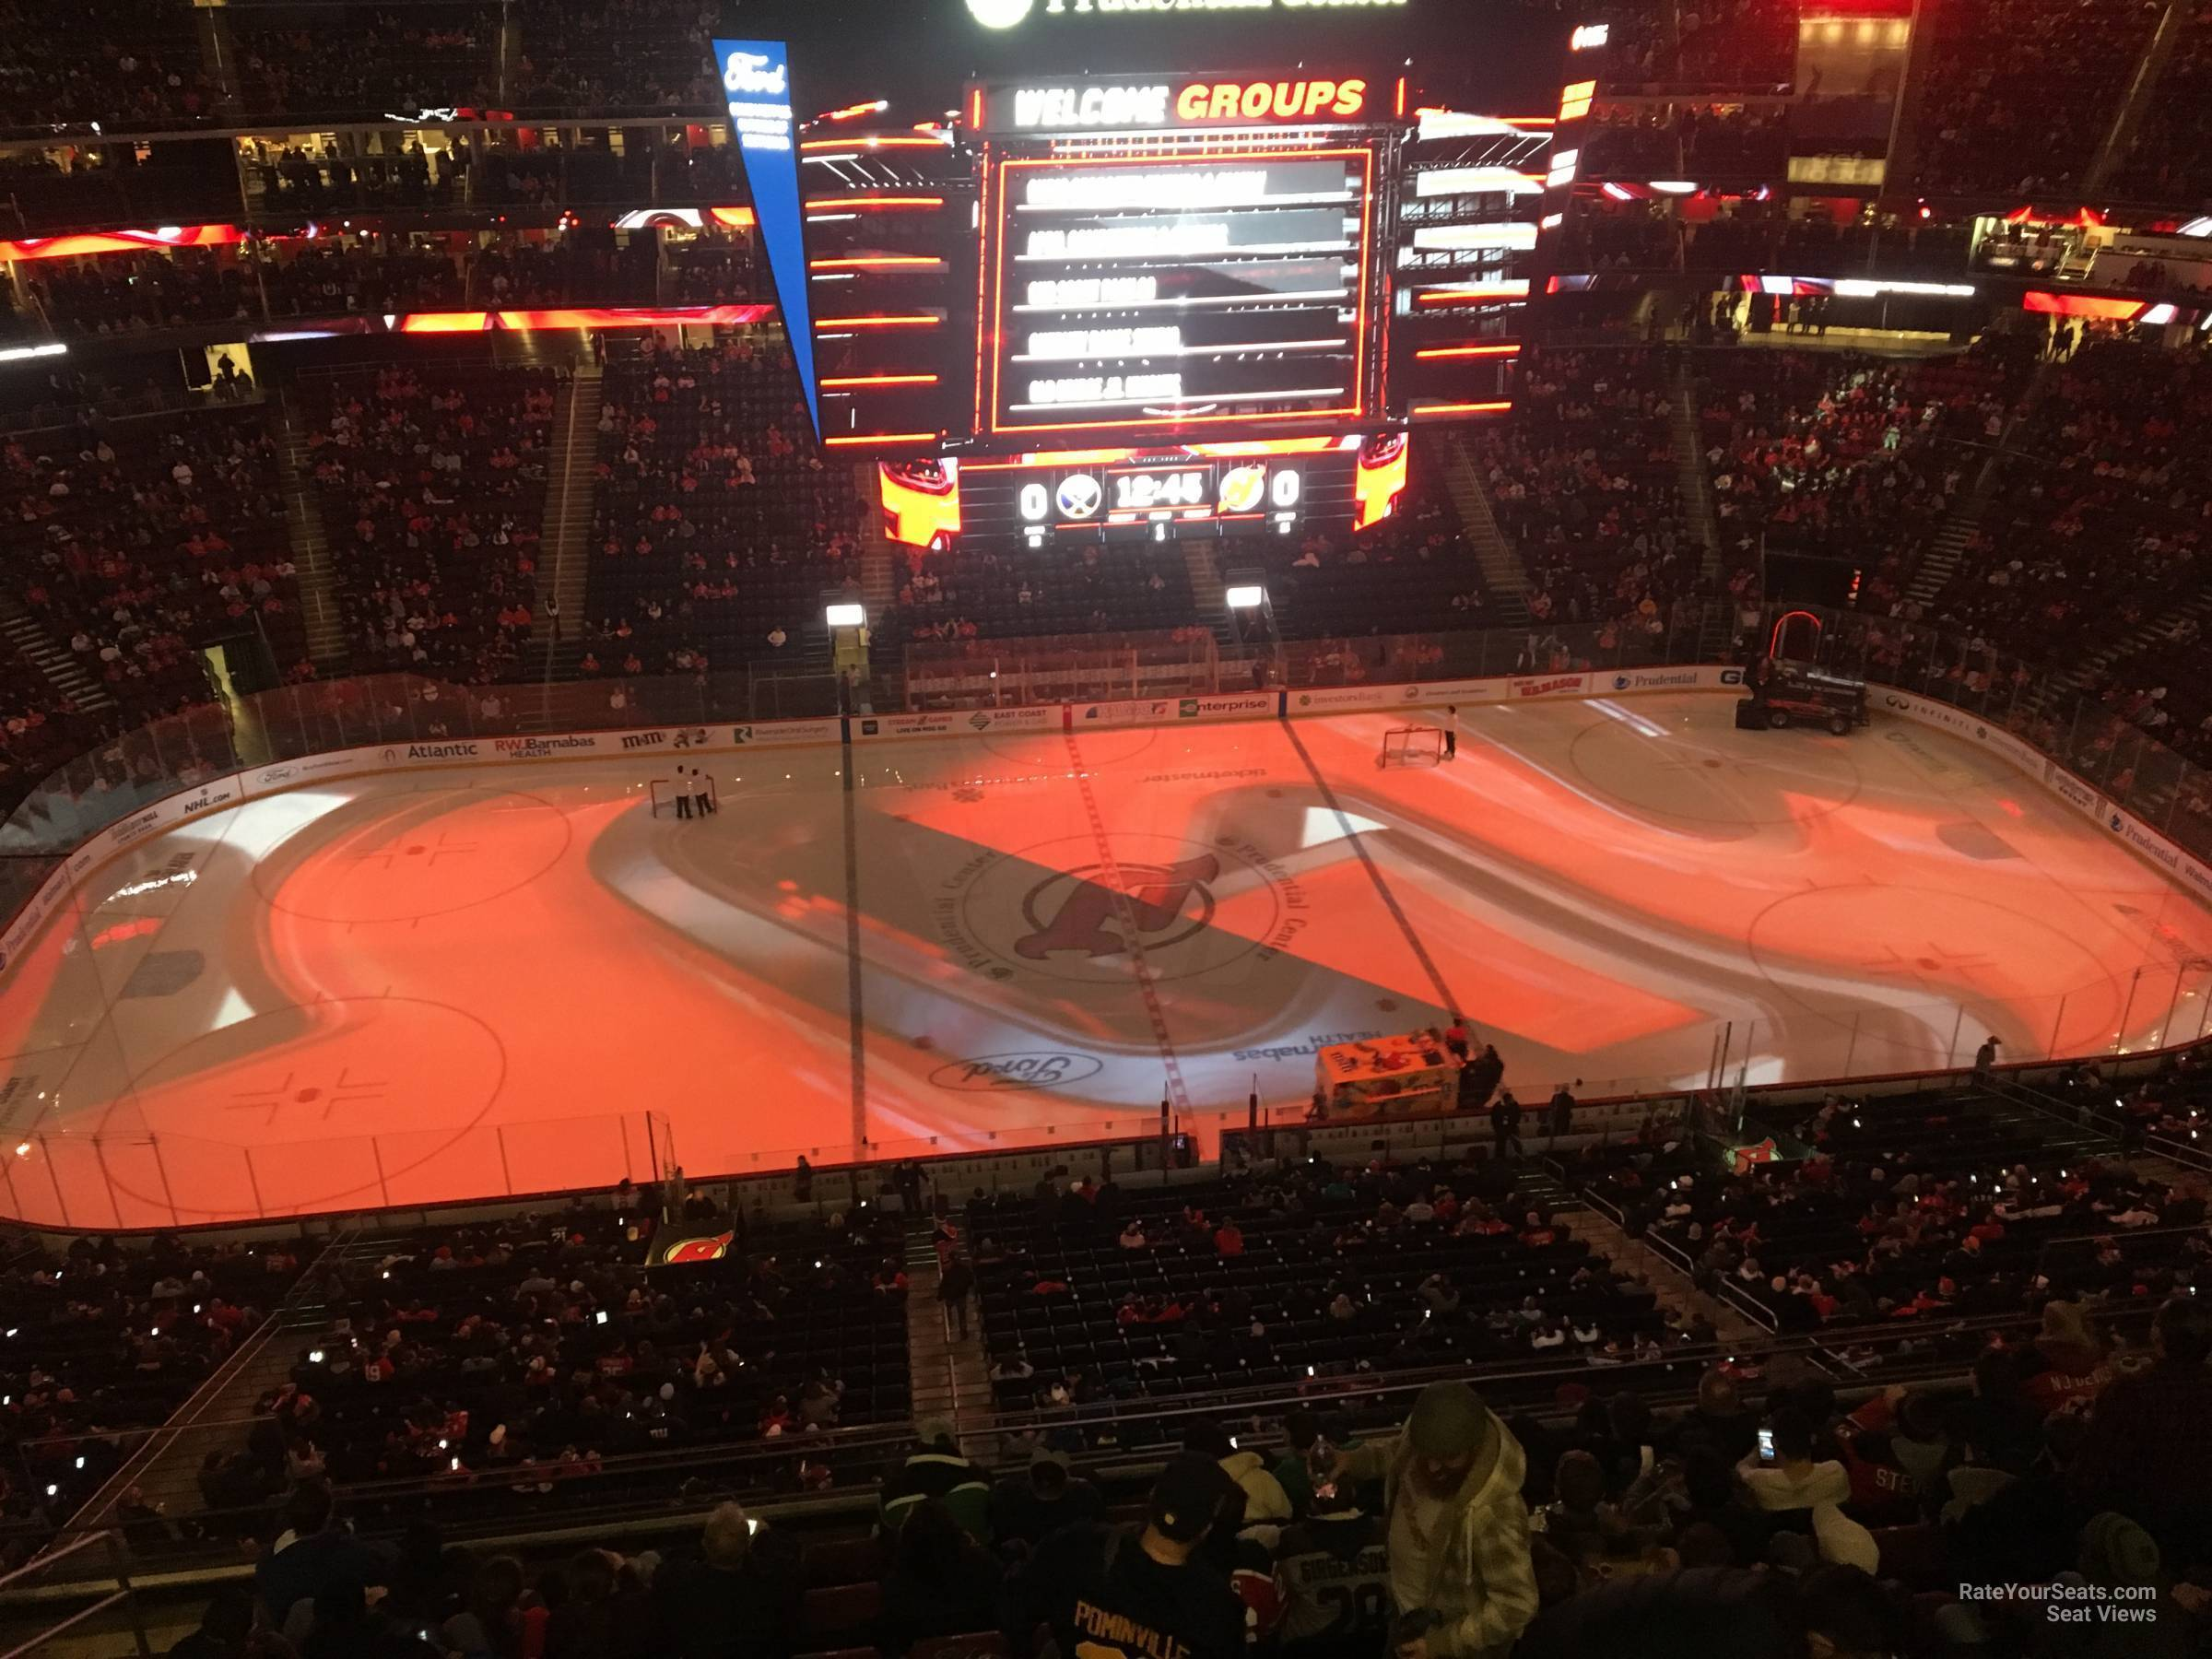 New Jersey Devils Seat View for Prudential Center Section 212, Row 1